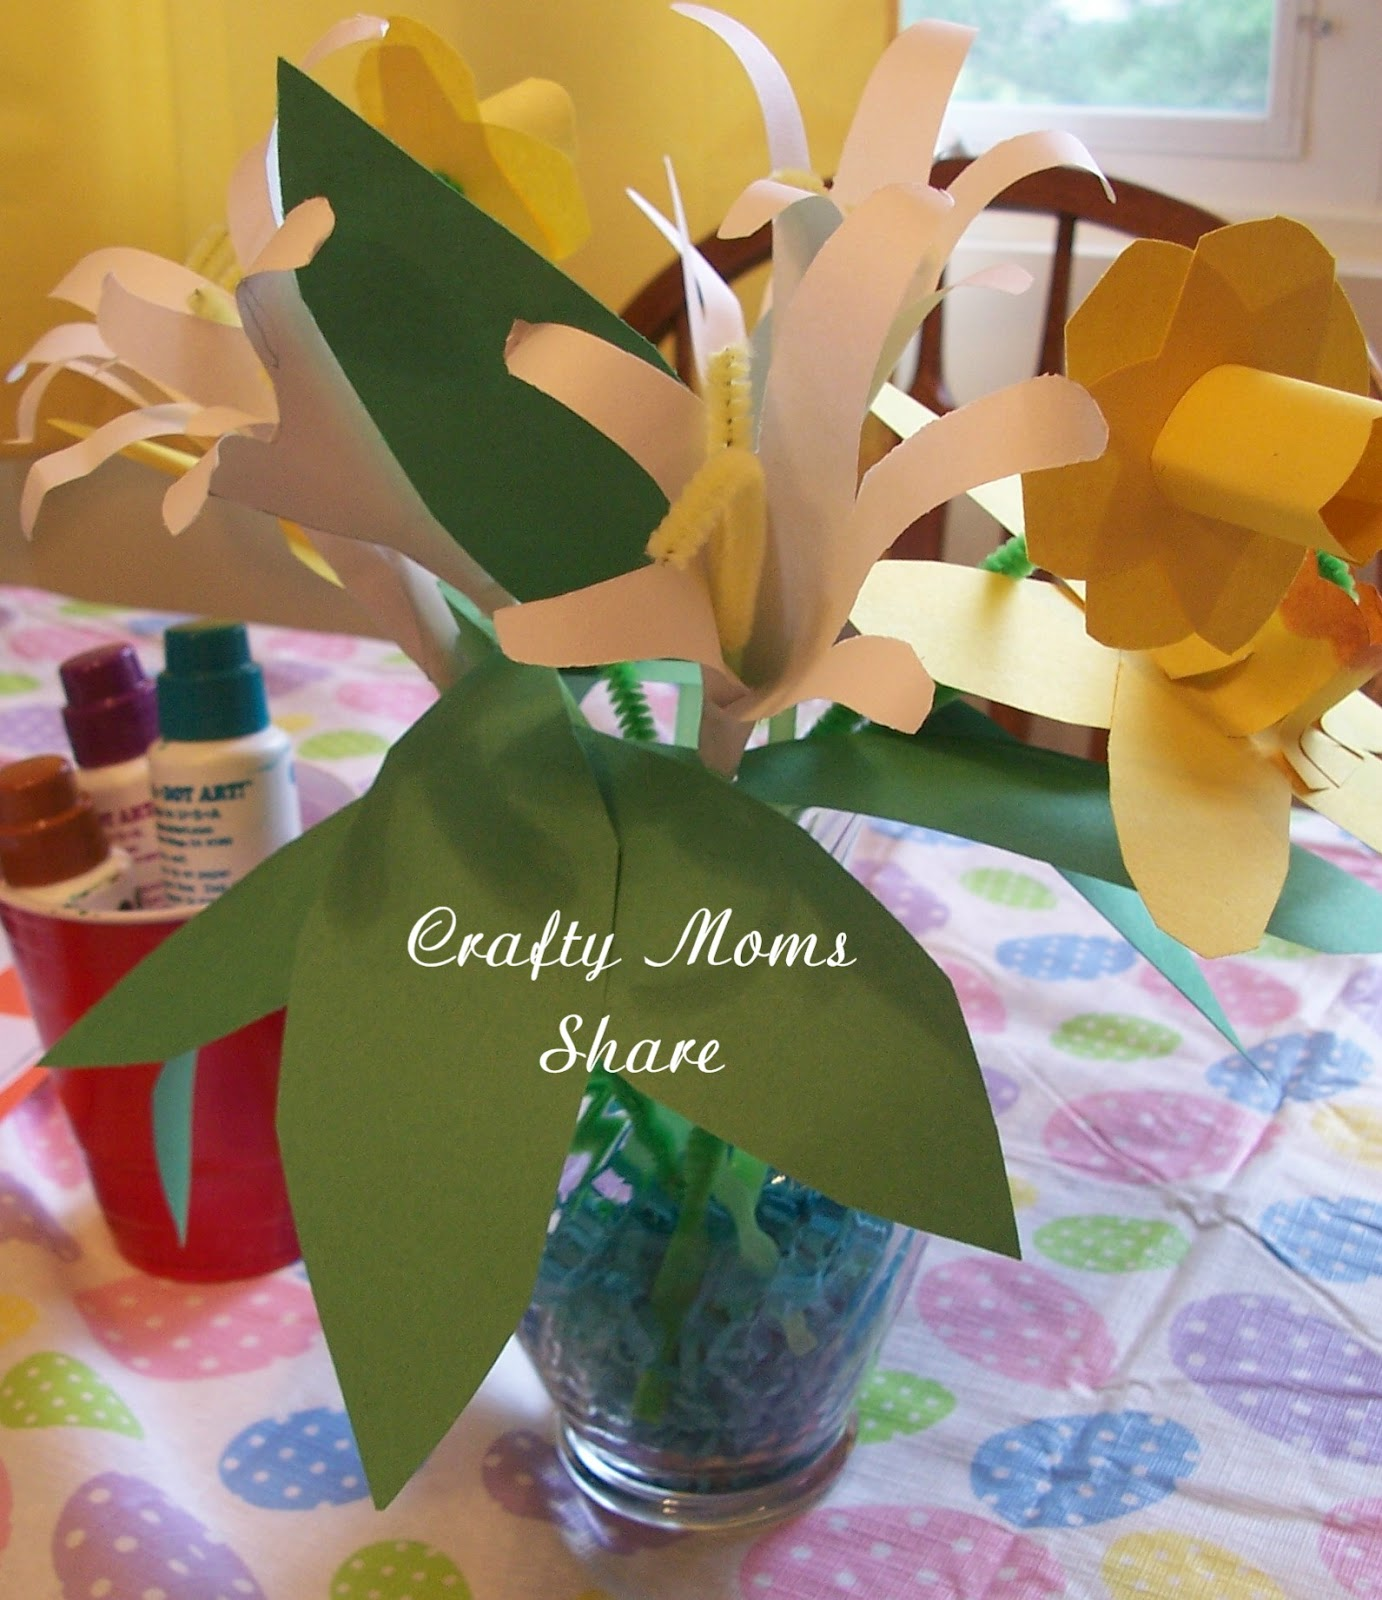 Crafty Moms Share Paper Flowers And Pumpkin Blueberry Pancakes